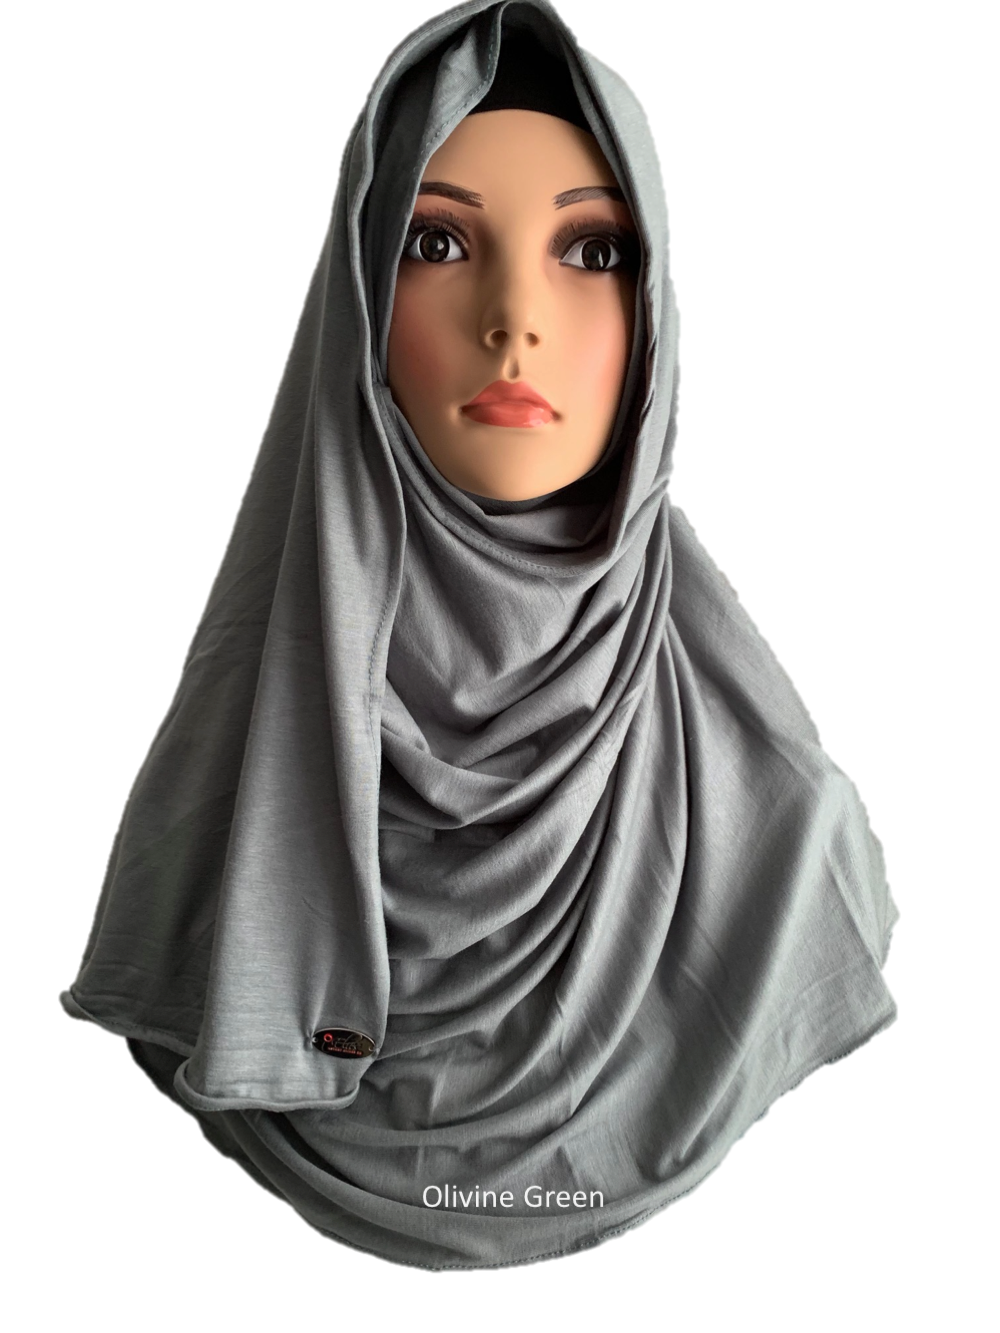 Olivine Green stretchy (COT) instant hijab SF